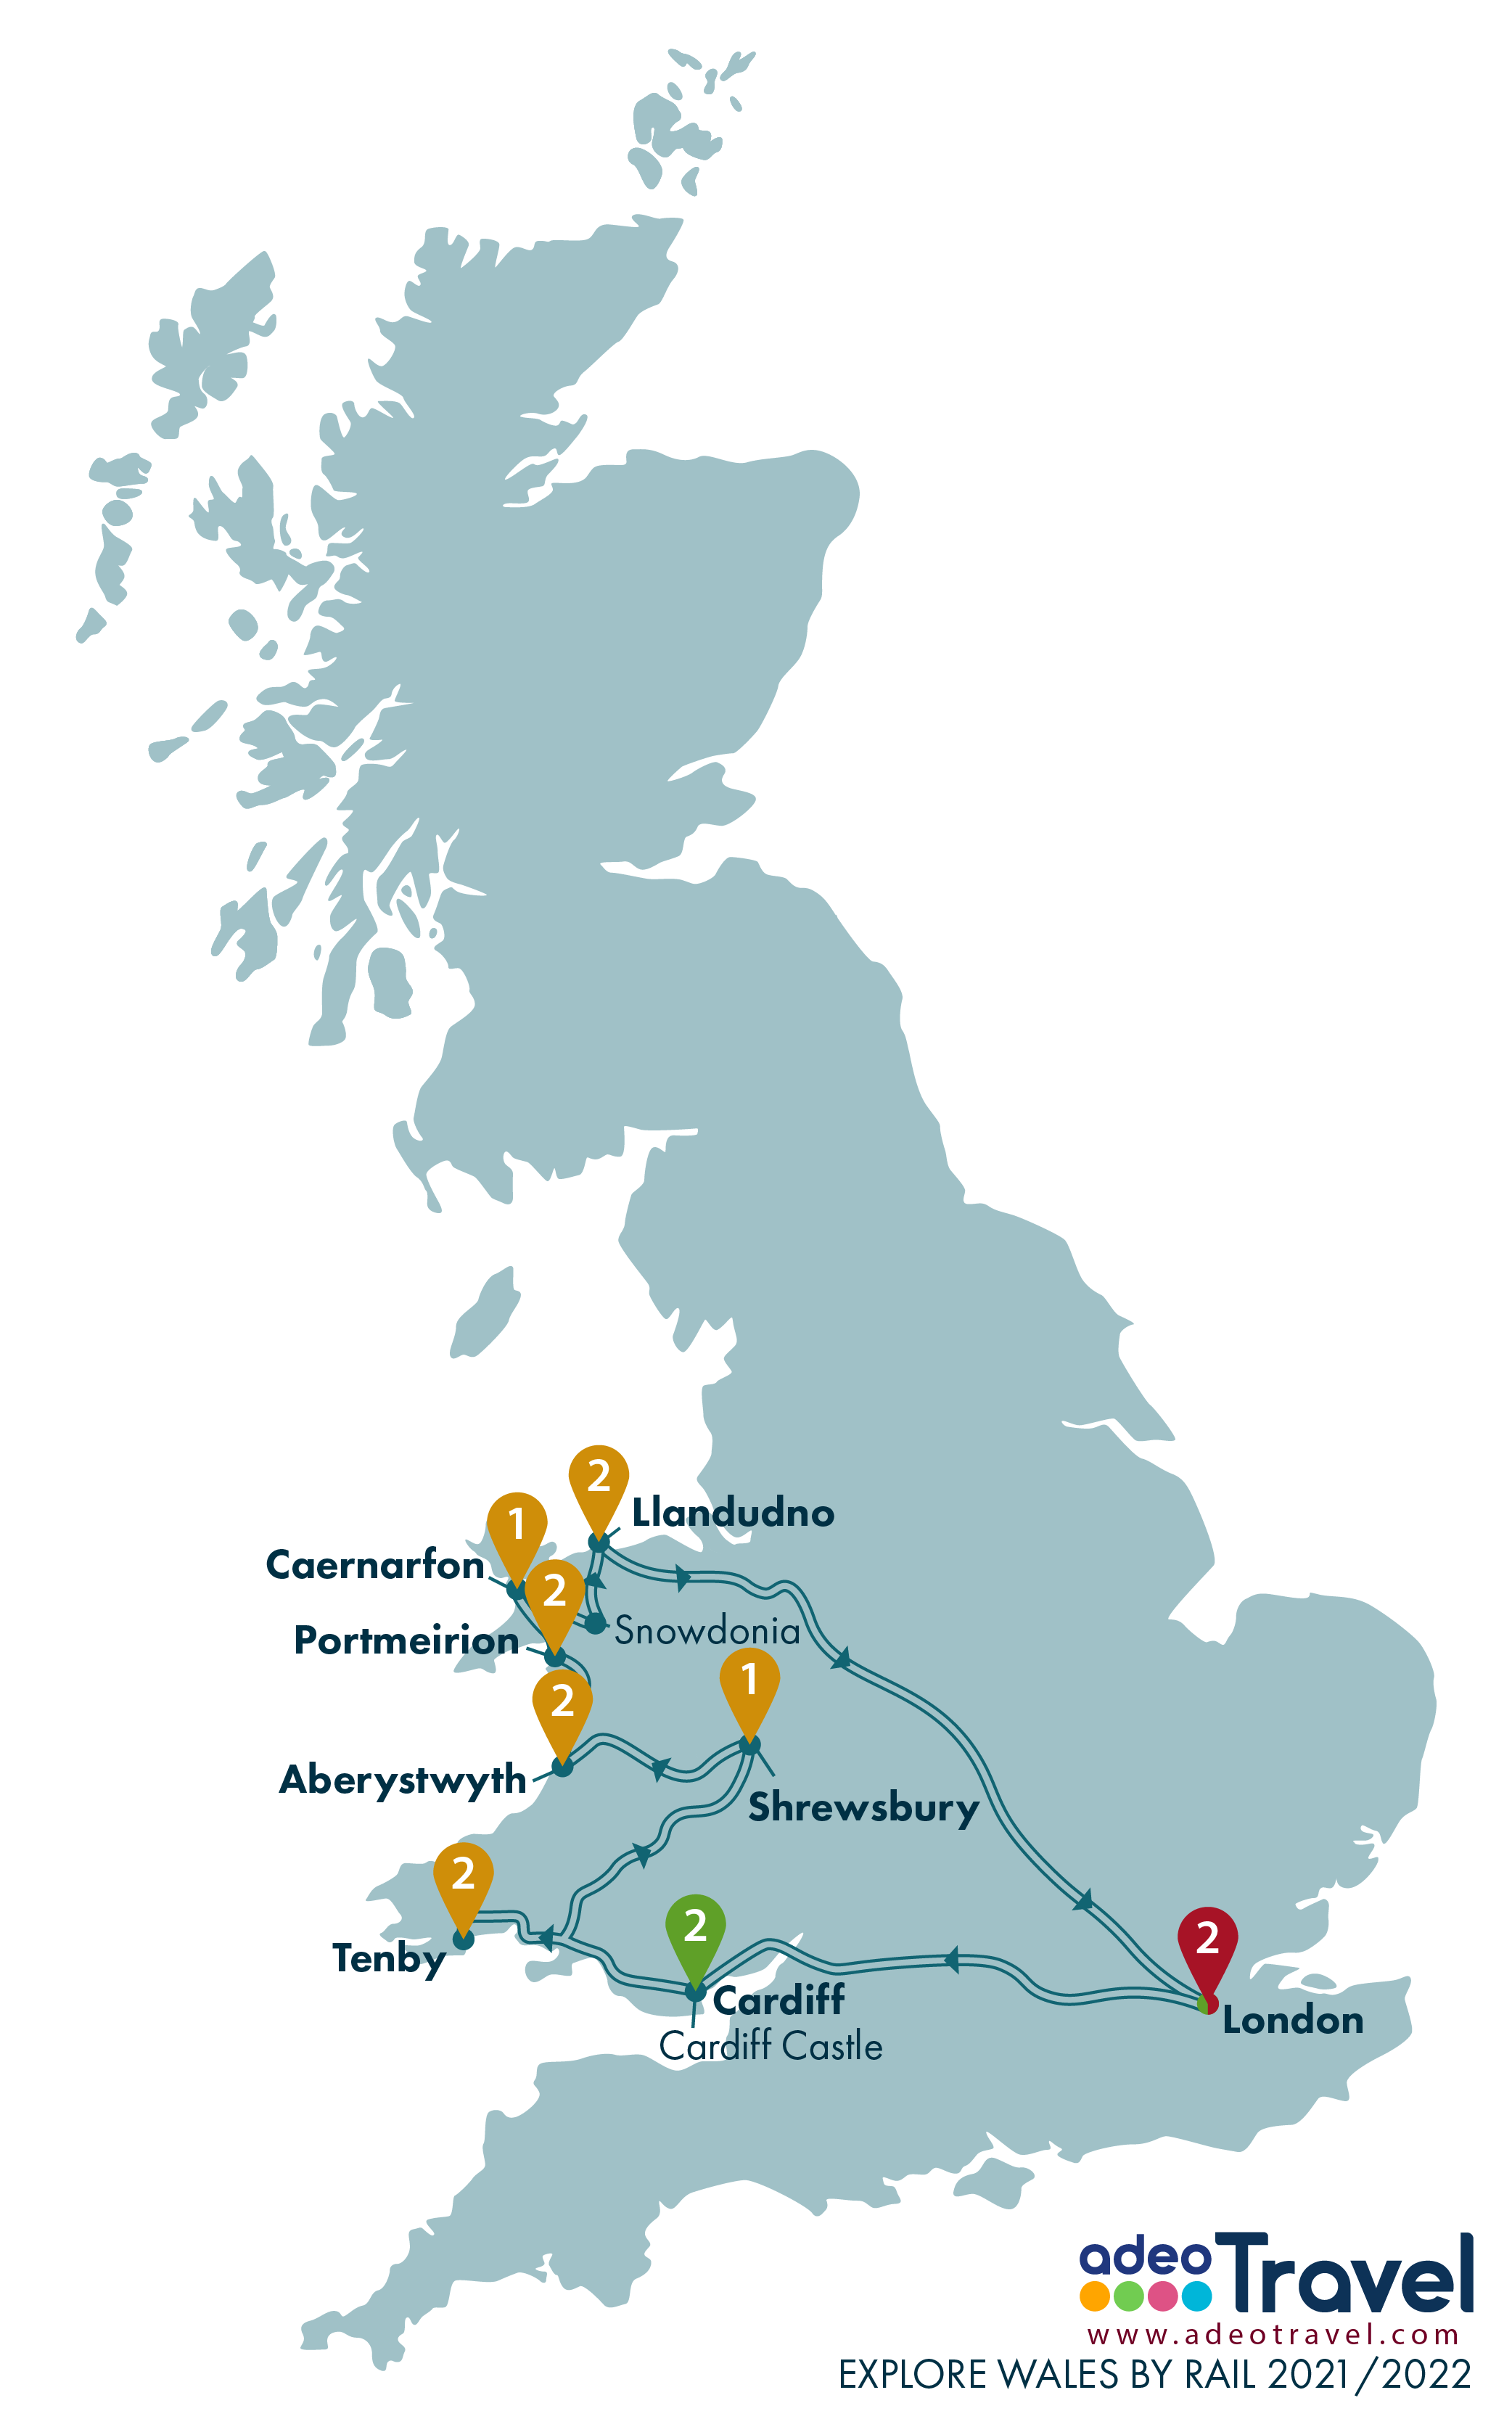 Map - Explore Wales by Rail 2021 2022